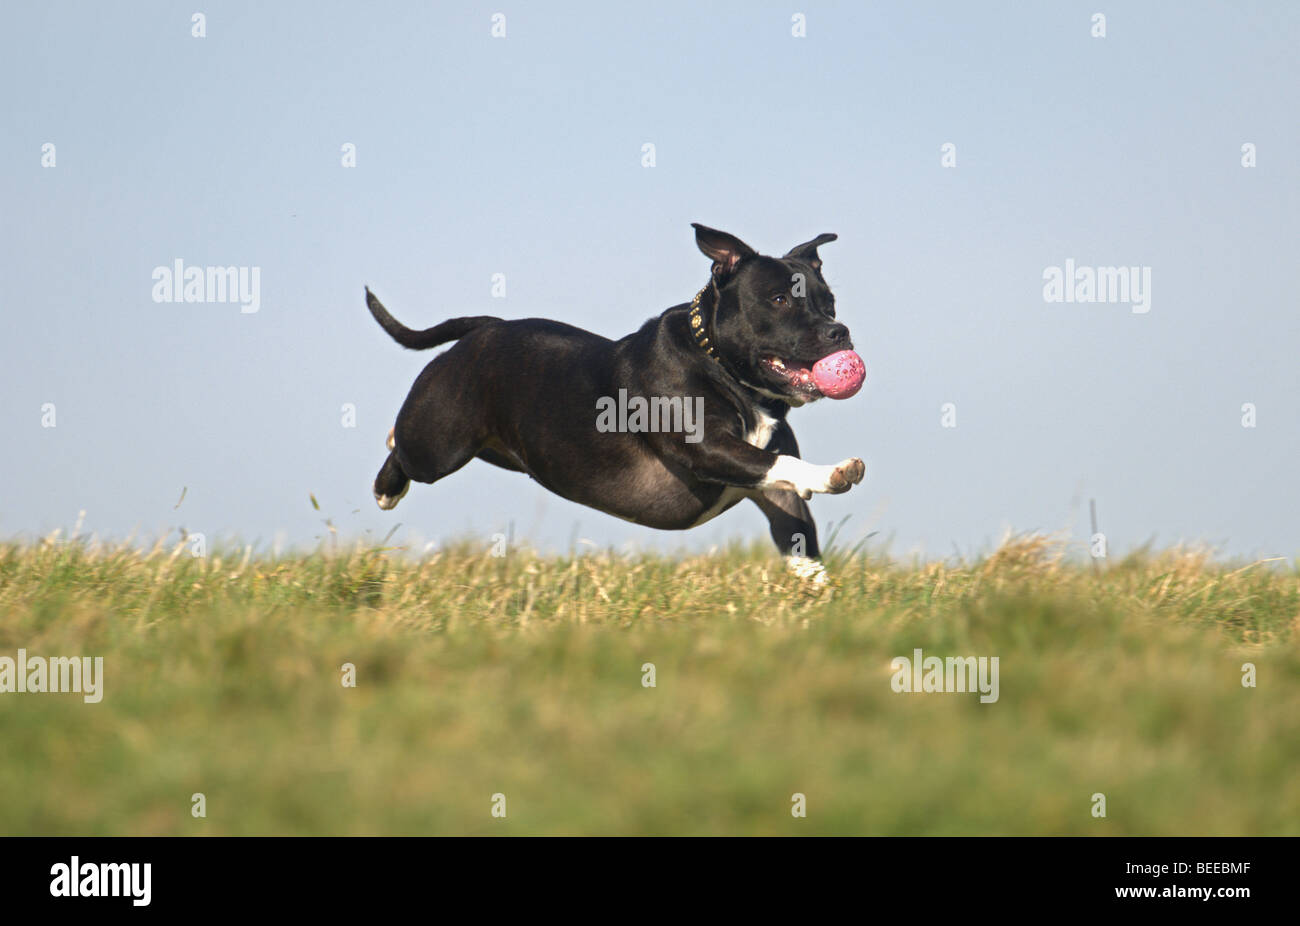 STAFFORDSHIRE BULL TERRIER DOG RUNNING ON GRASS WITH BALL IN ITS MOUTH - Stock Image